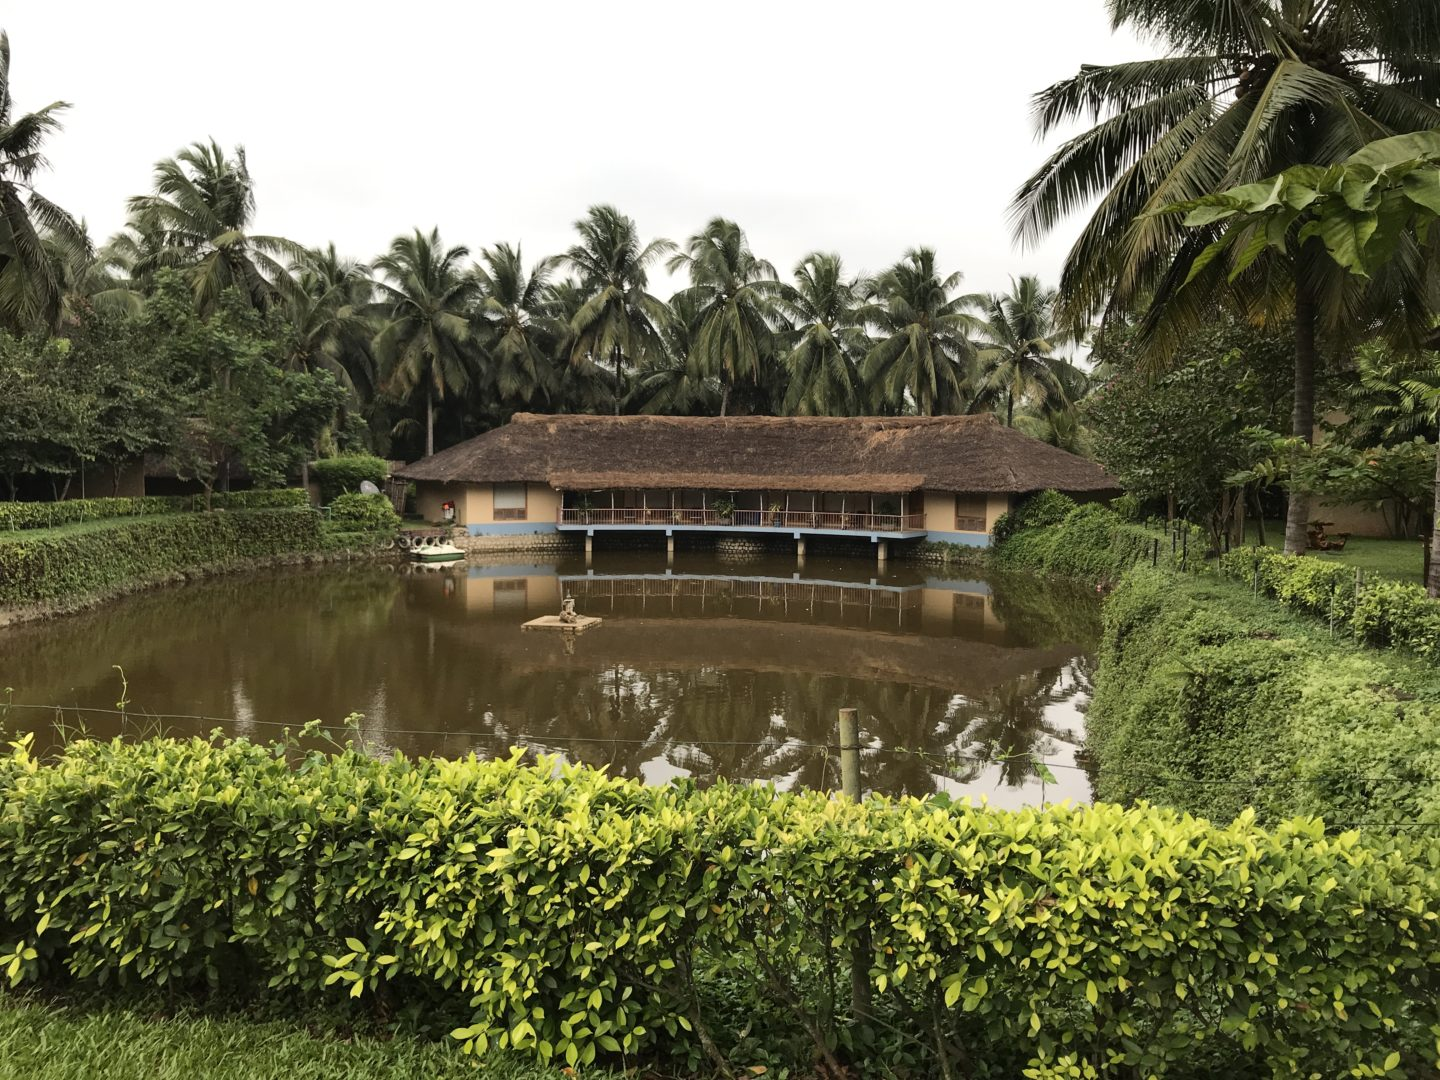 resorts for foreigners in india